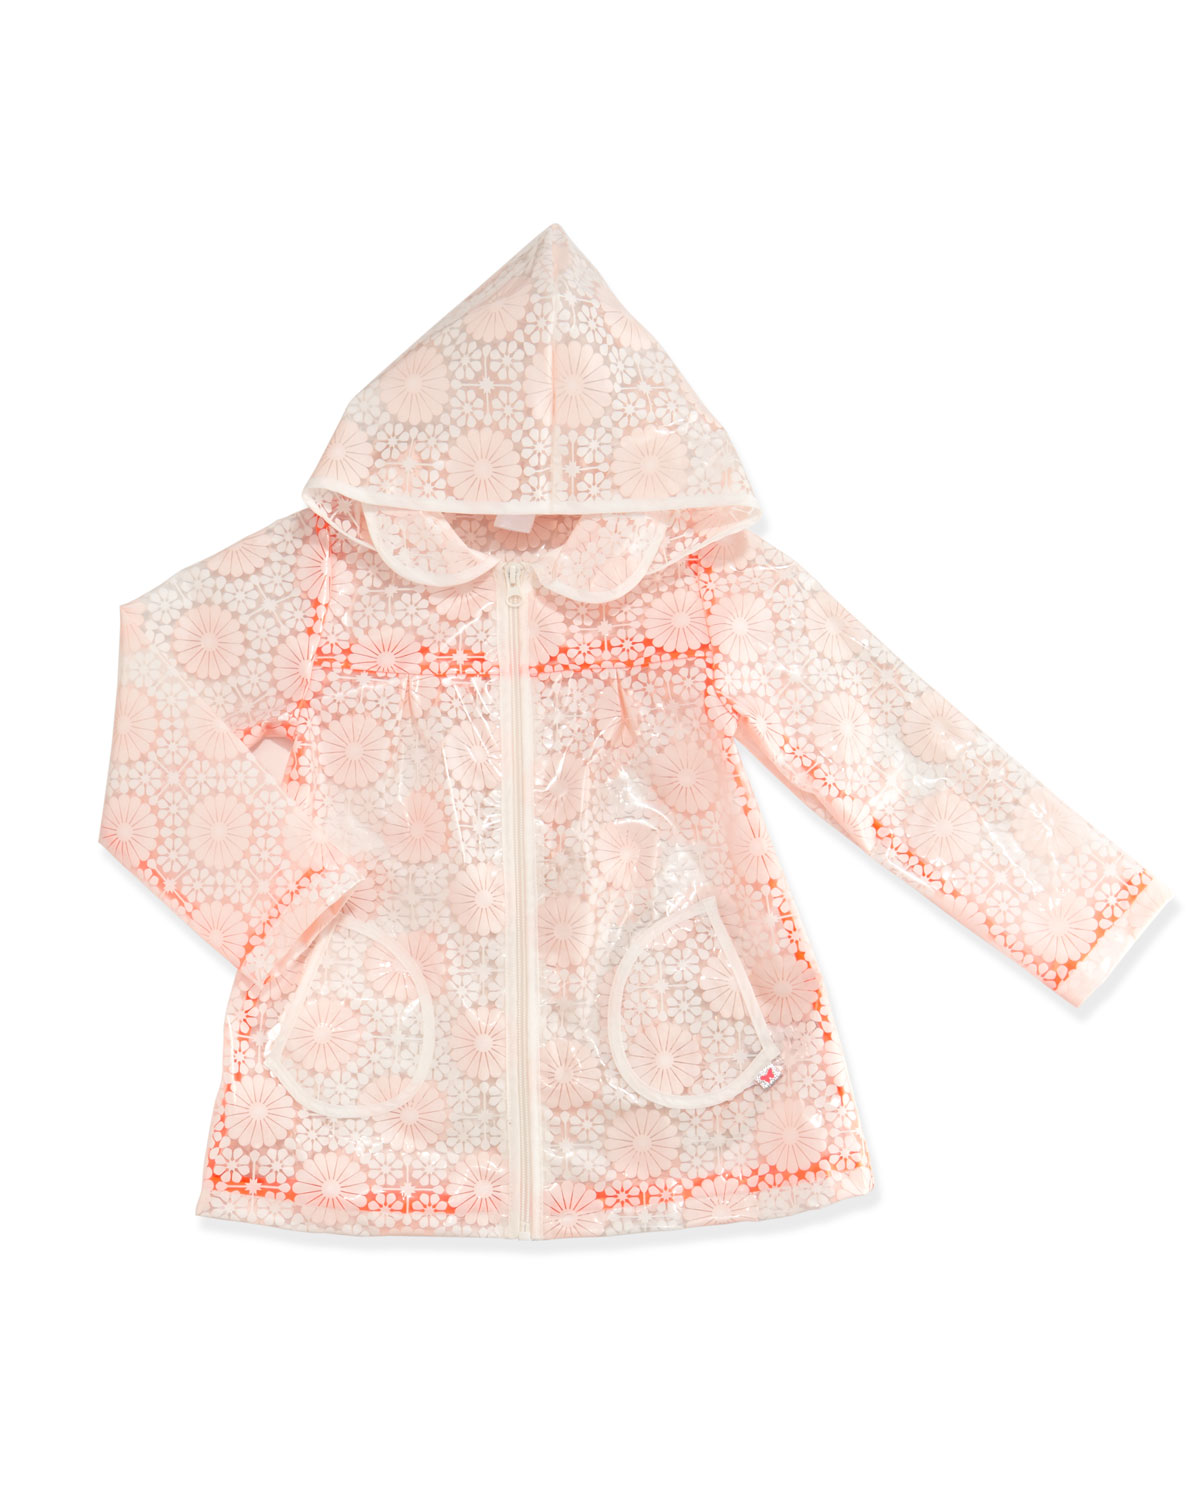 Sheer Floral Raincoat, Pink, Size 4-8